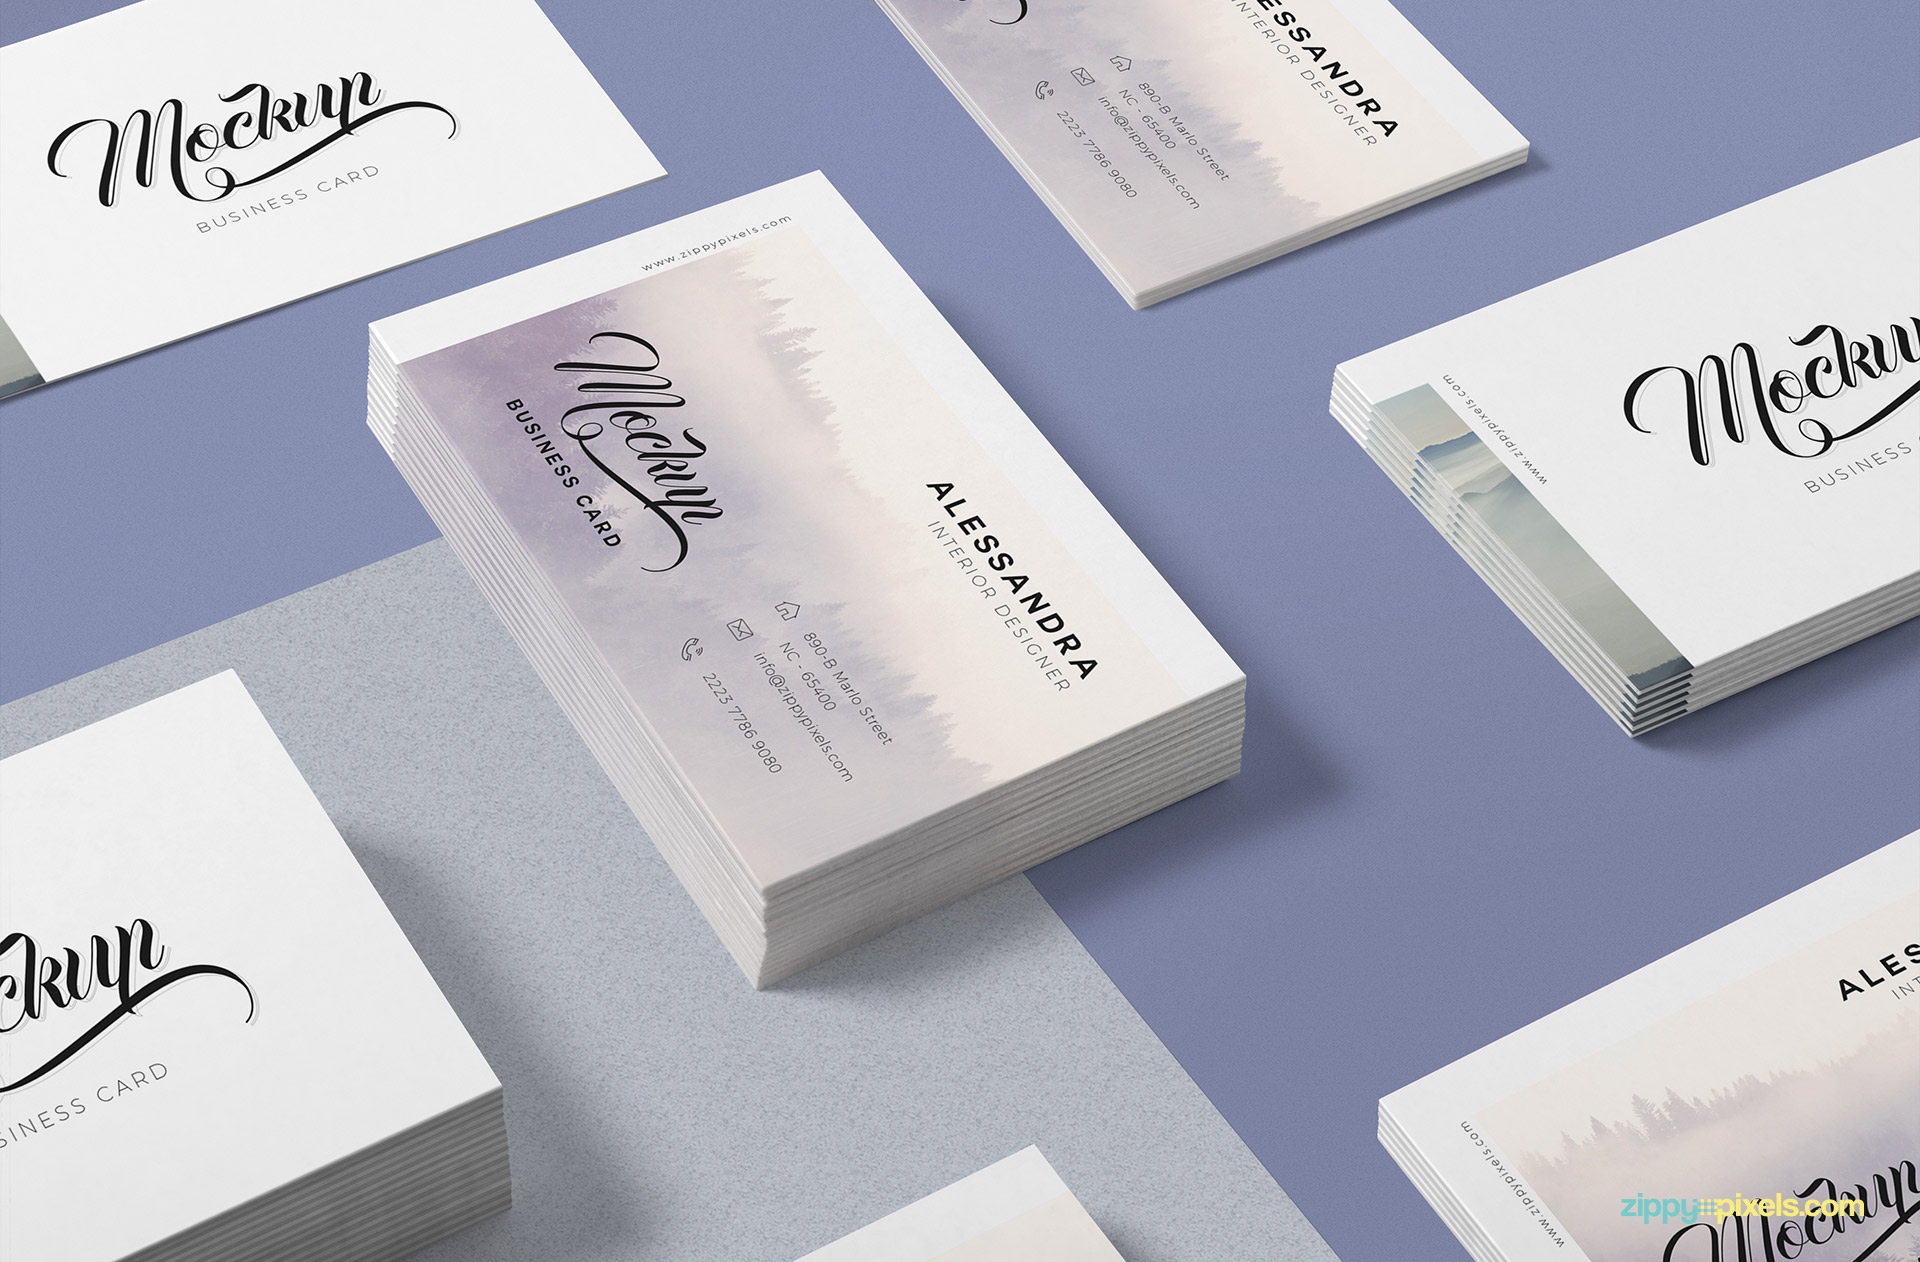 Elegantly designed free business card mock up.